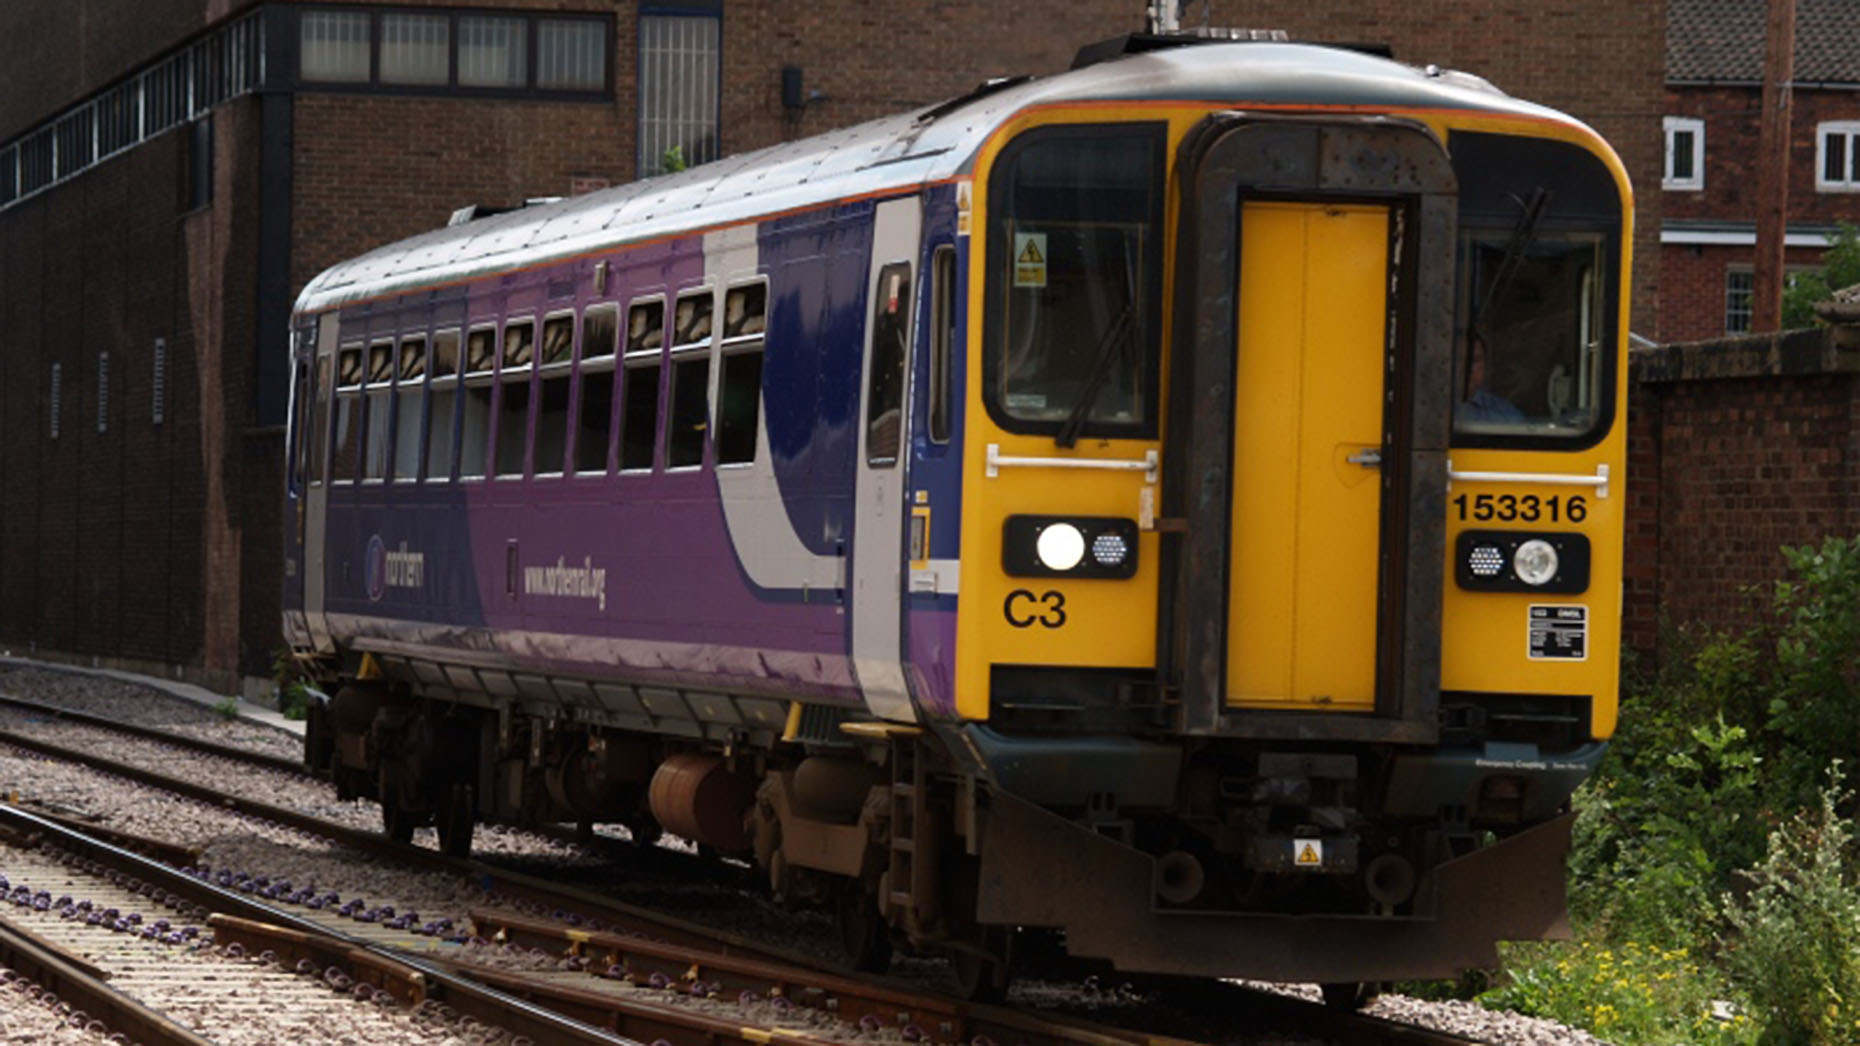 northern rail - photo #4